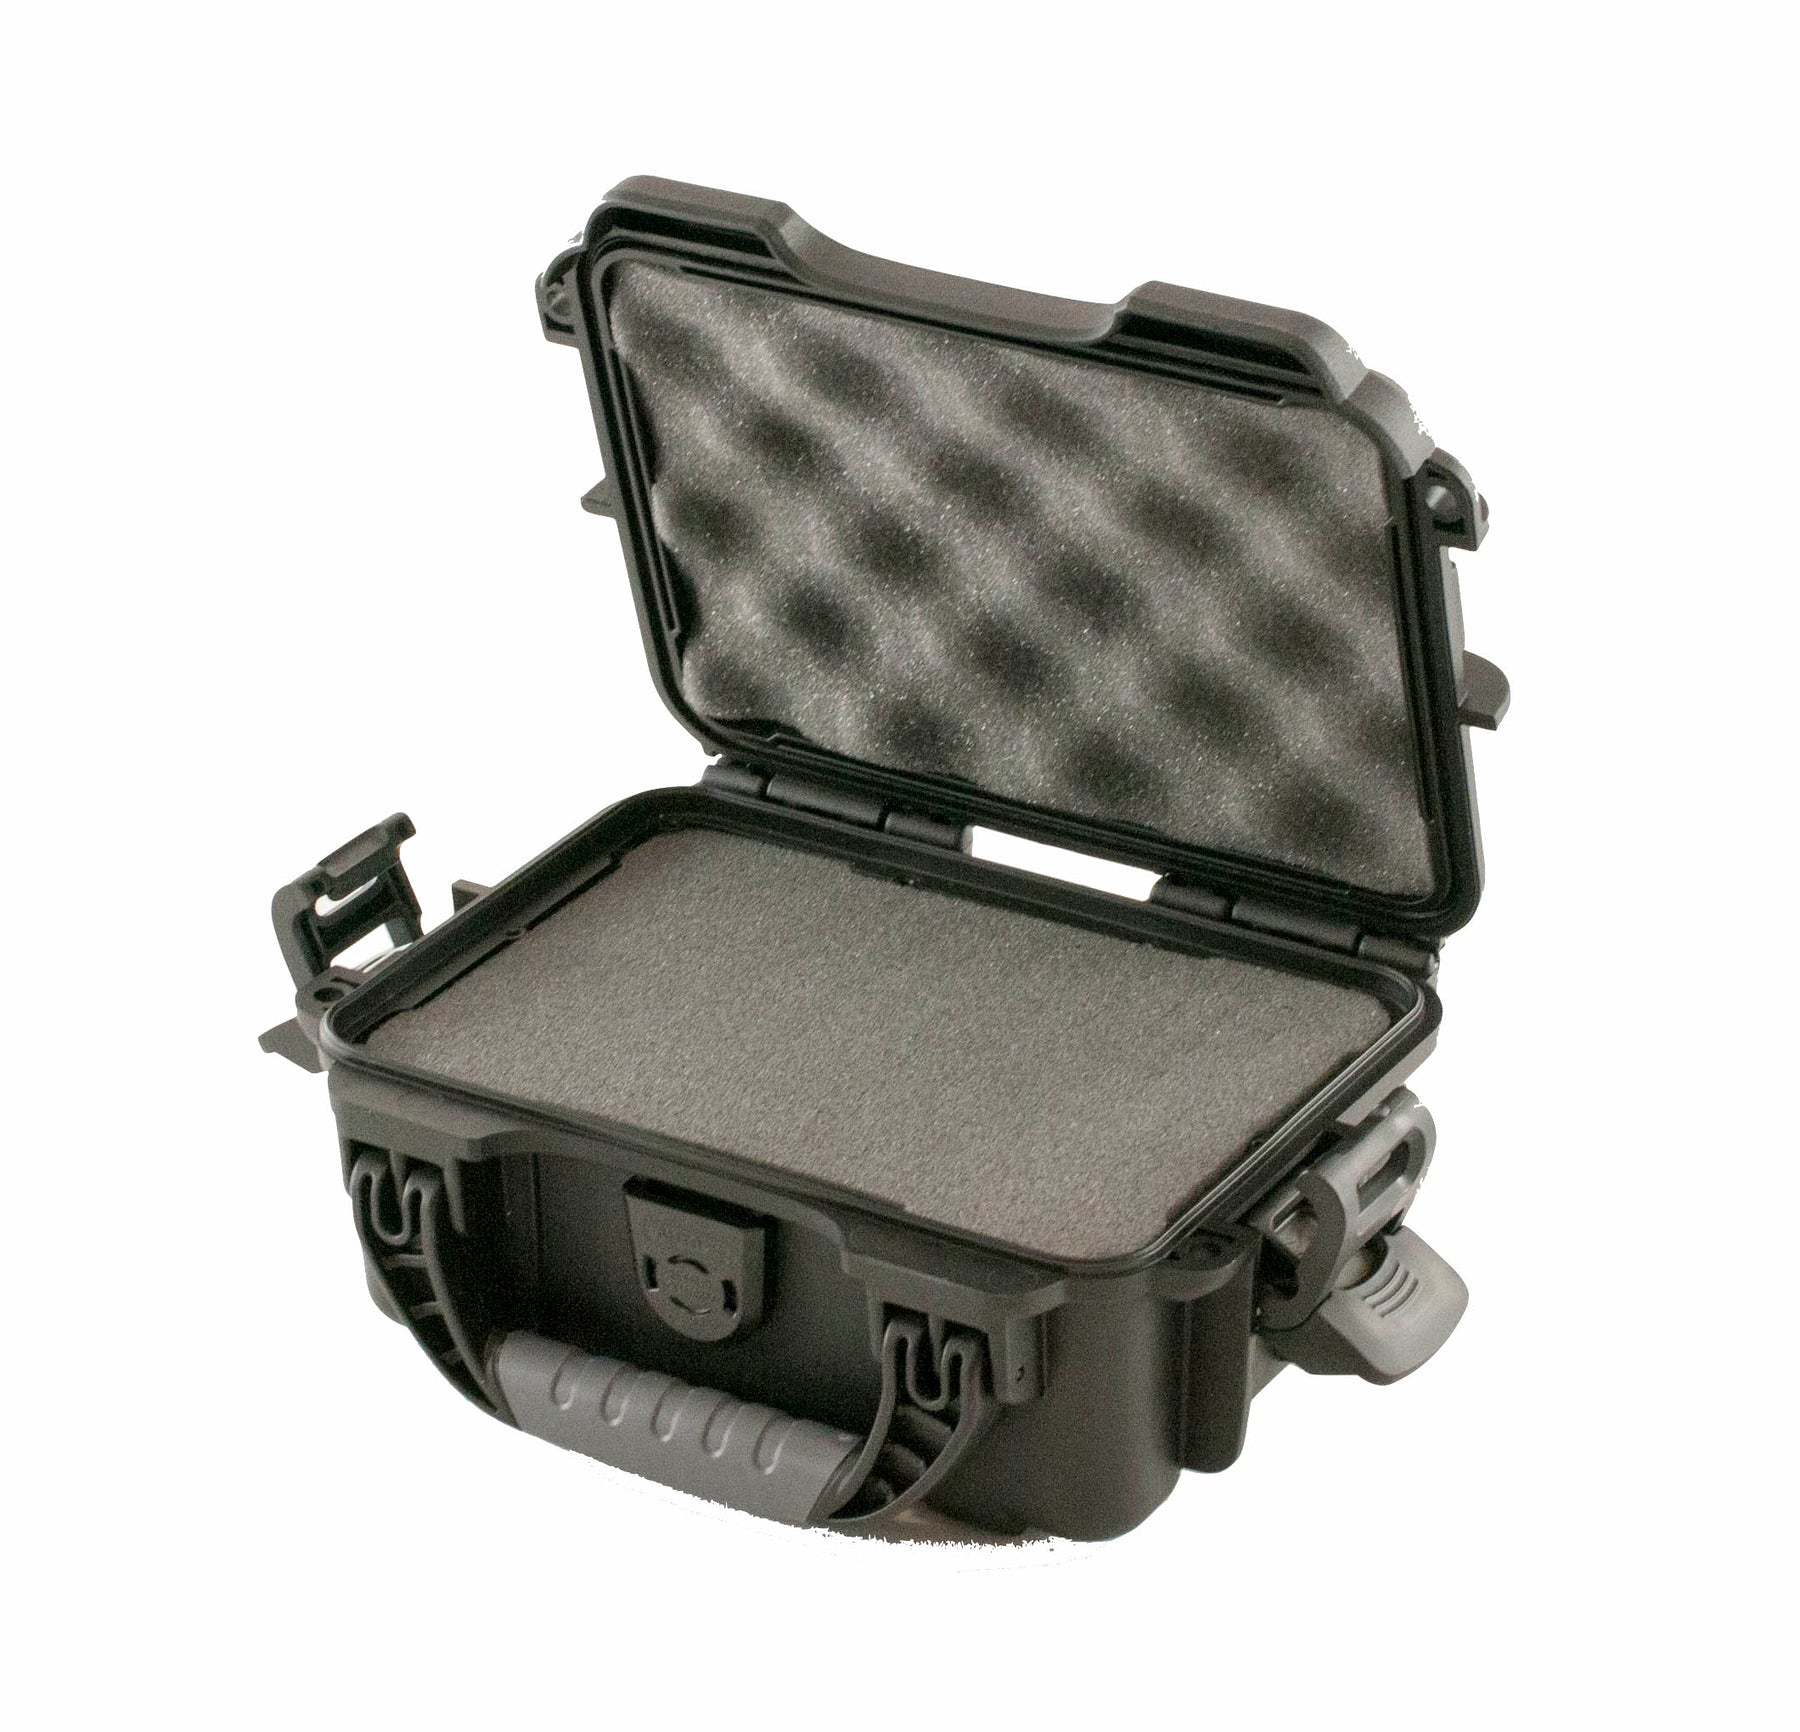 503 Equipment Case